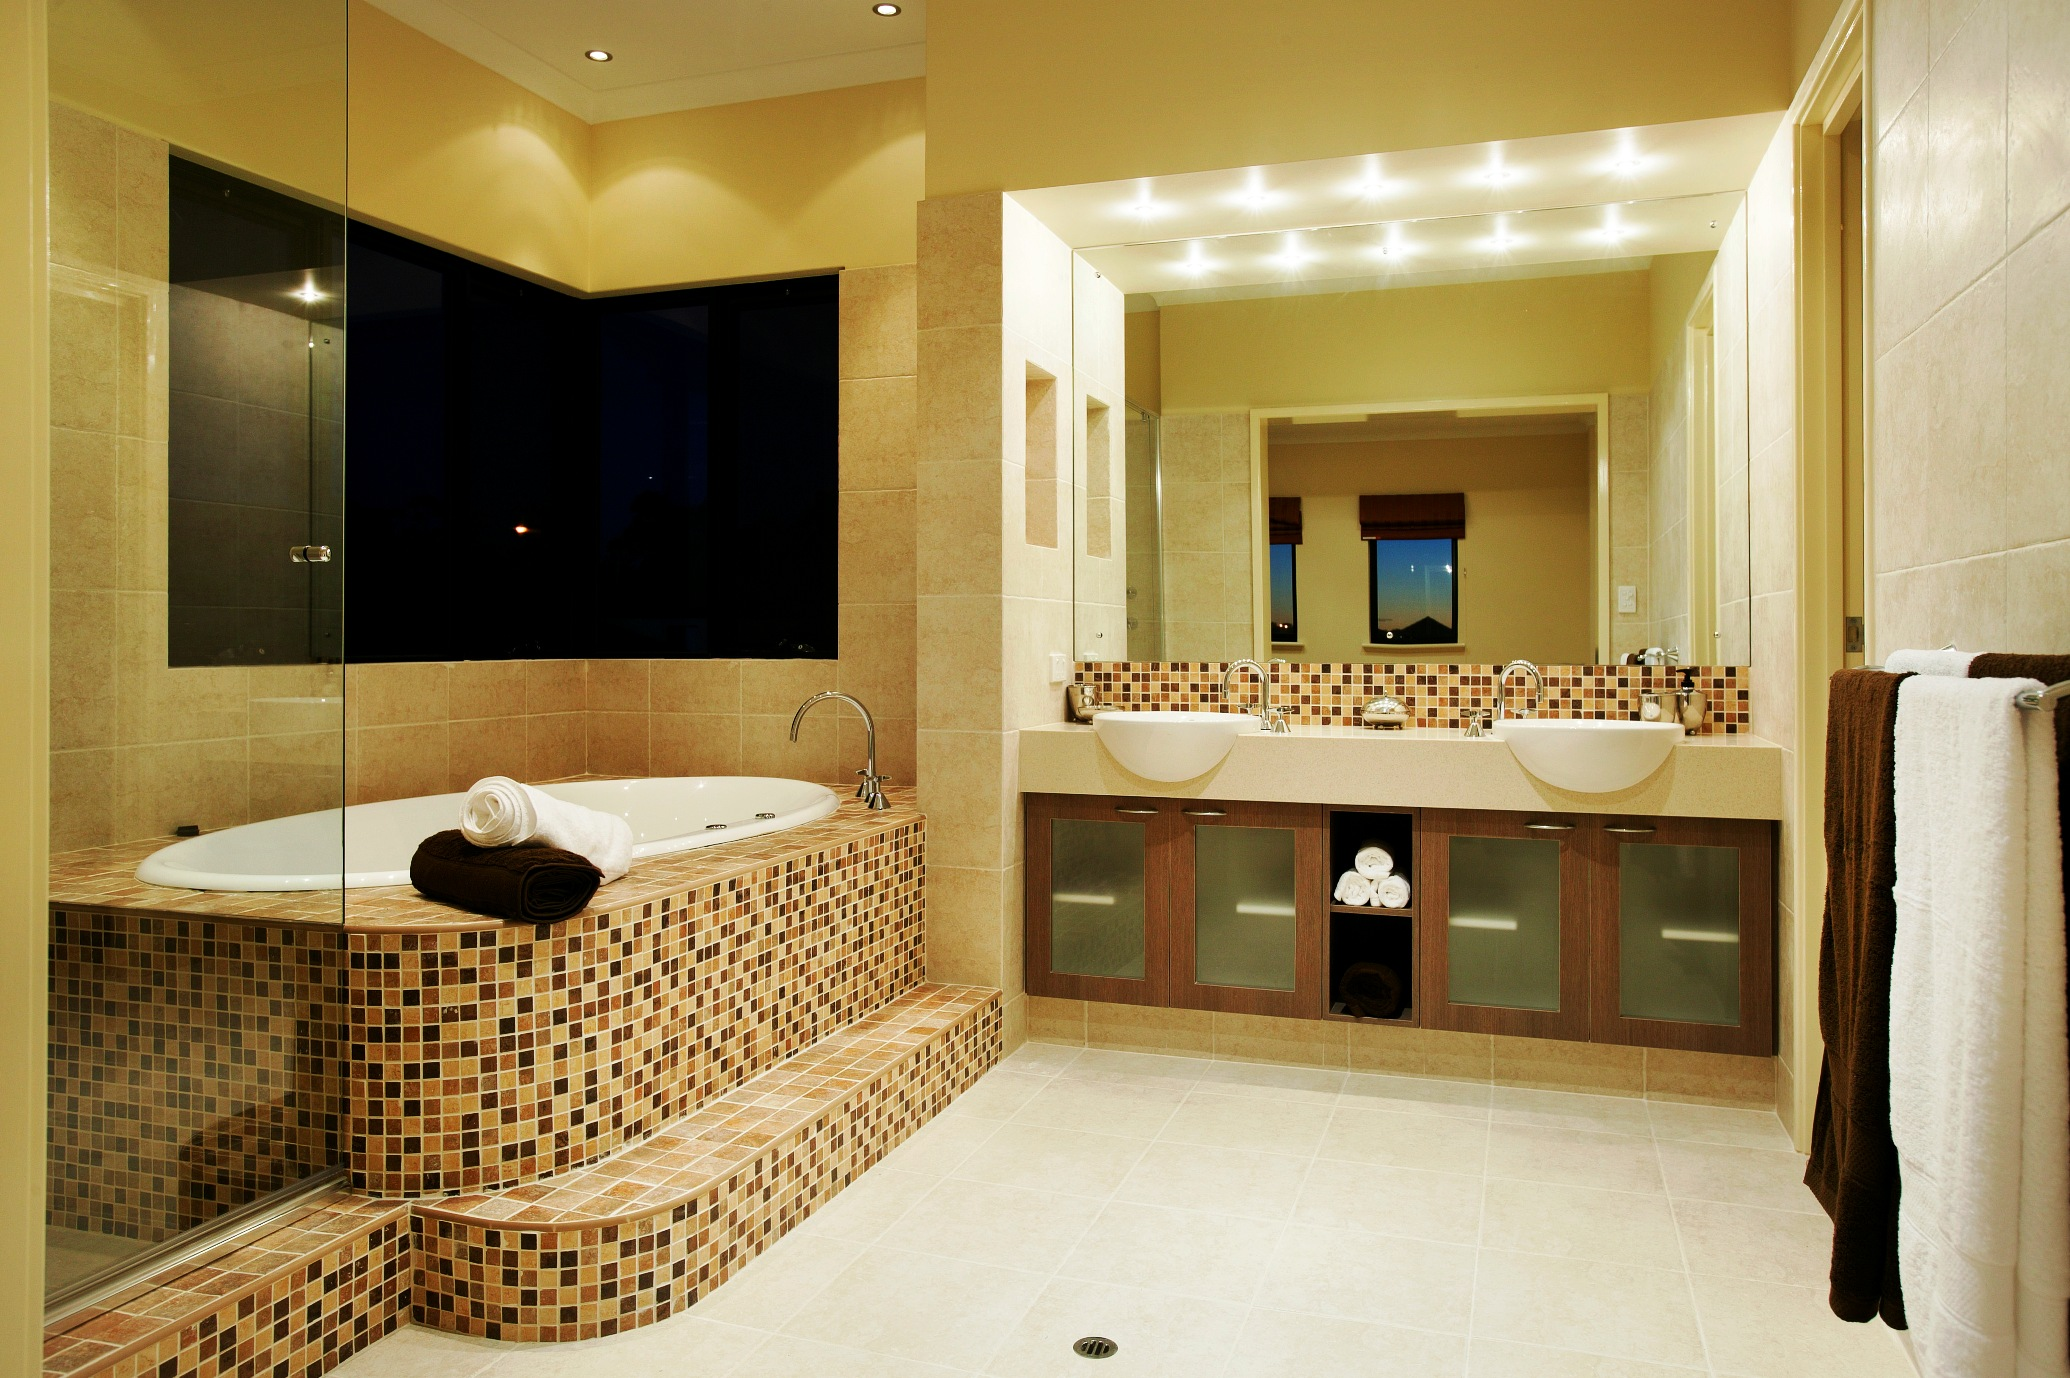 Bathroom Interior Design. Bathroom Design Bathroom Interior Design I